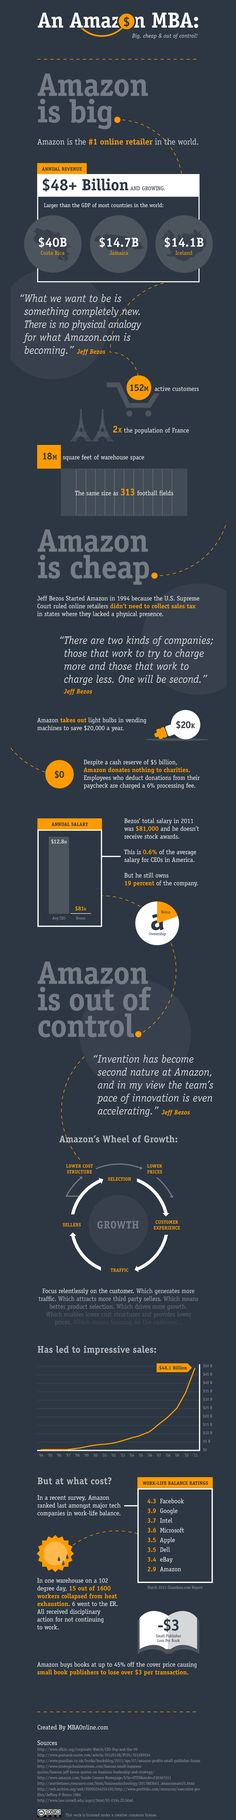 How Amazon Saves Money